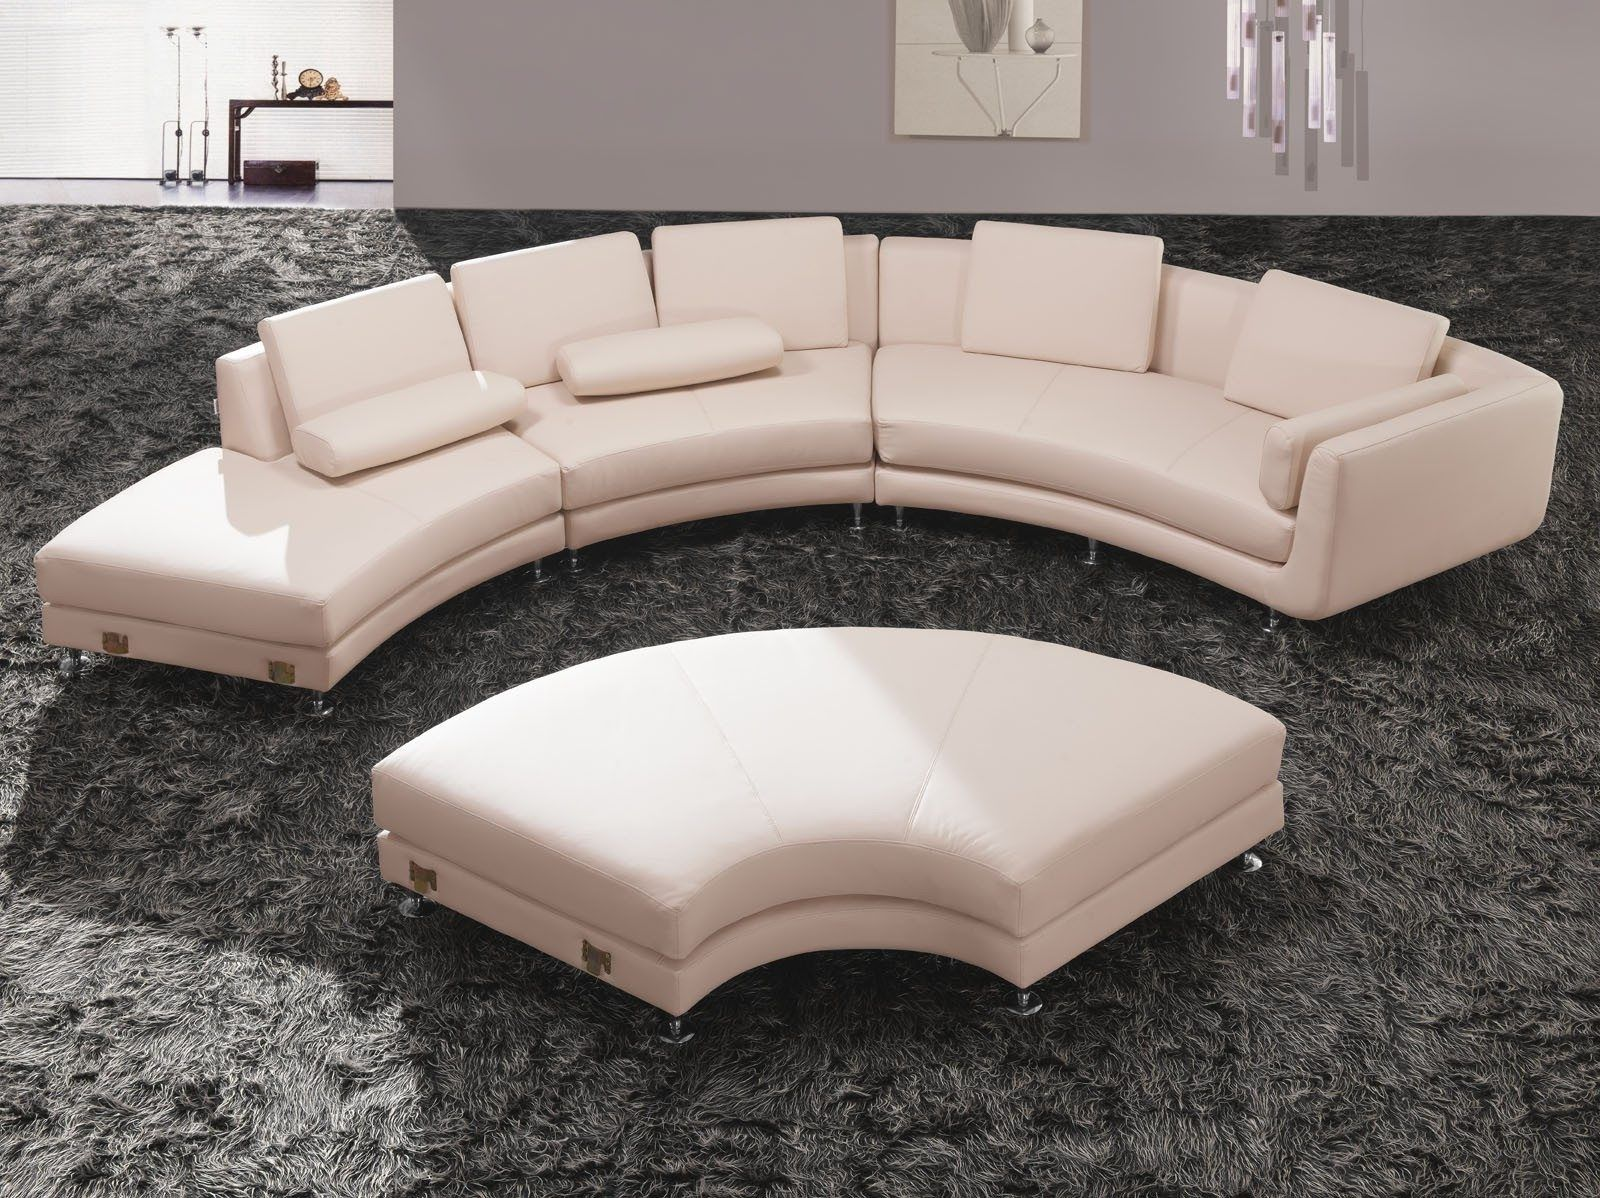 Luxury Living Room Sofas Design With Curved Couch Curved Leather